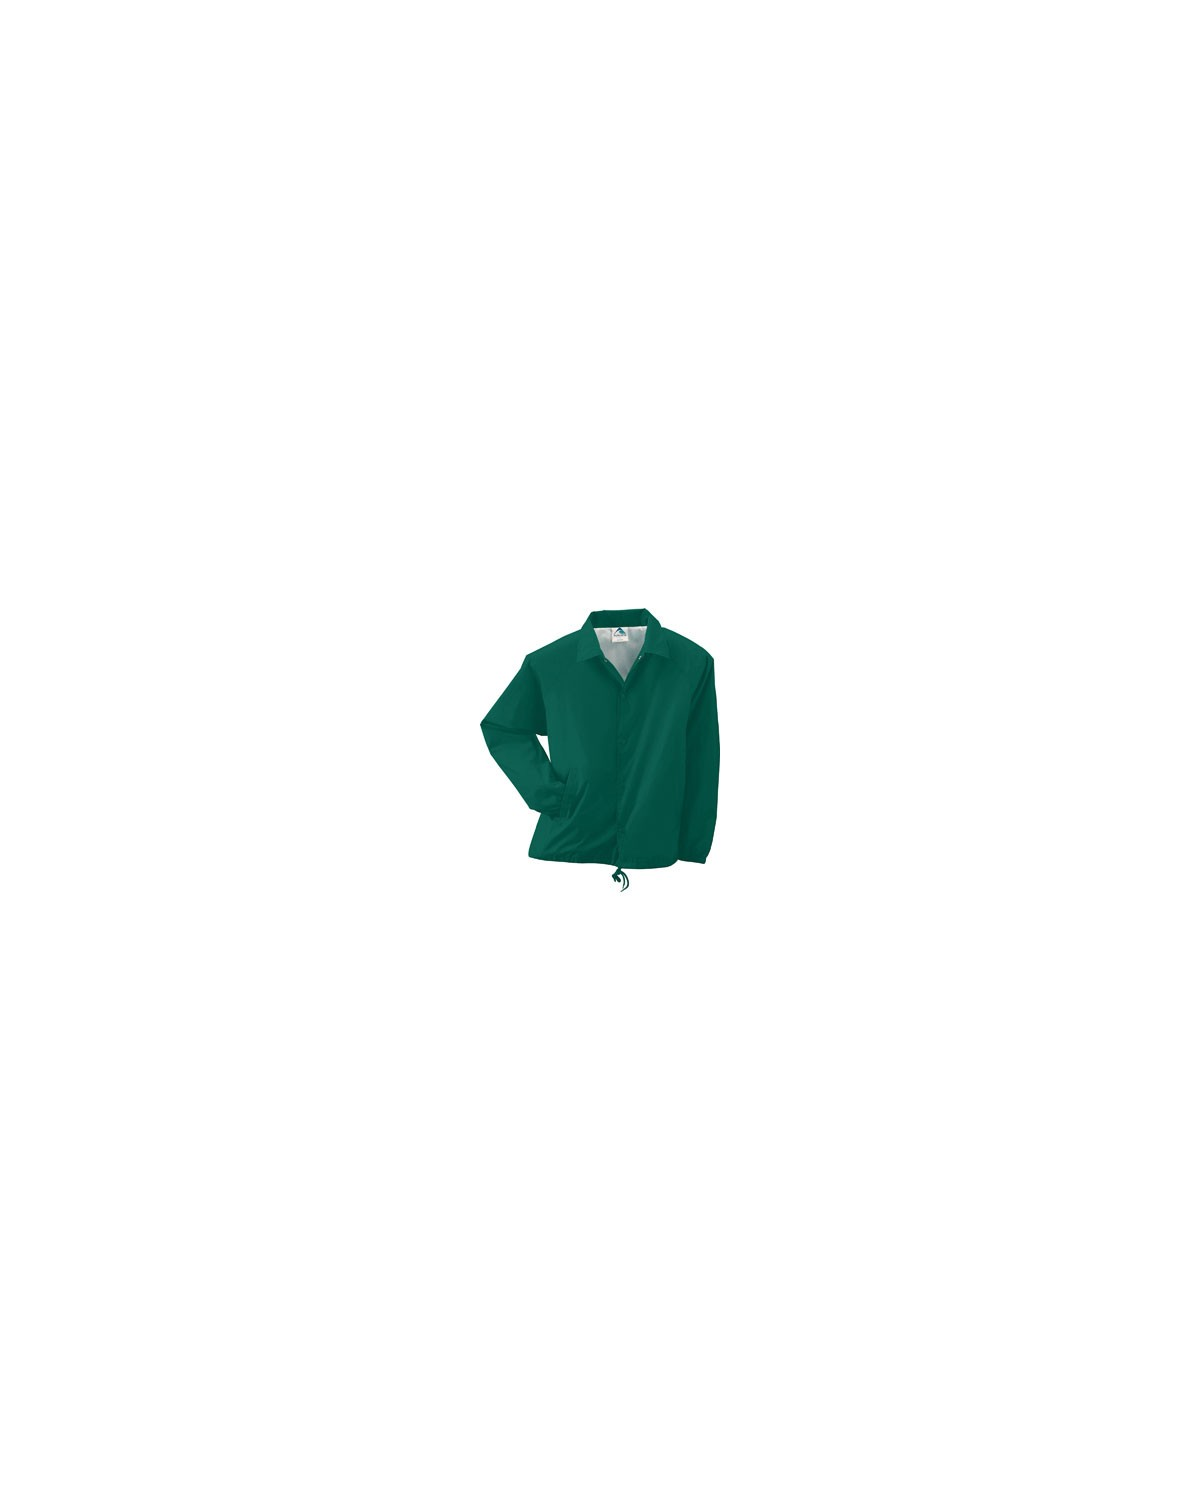 3101 Augusta Drop Ship DARK GREEN